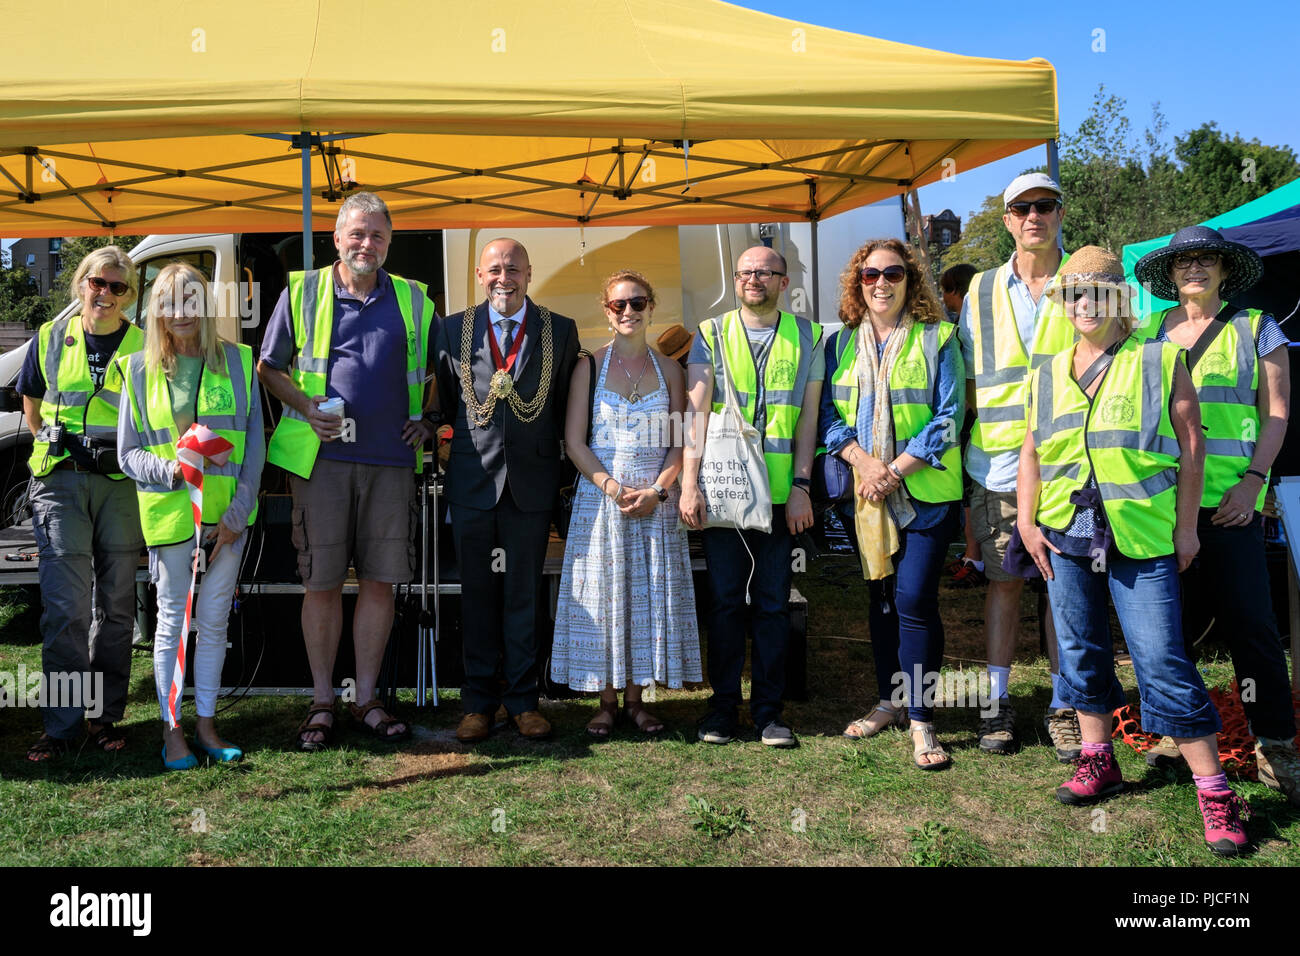 Mayor of Streatham, Cllr Christopher Wellbelove (m), Friends of Streatham Common Chair Mike Robinson (3rd left), organisers, Streatham Kite Day 2018 - Stock Image